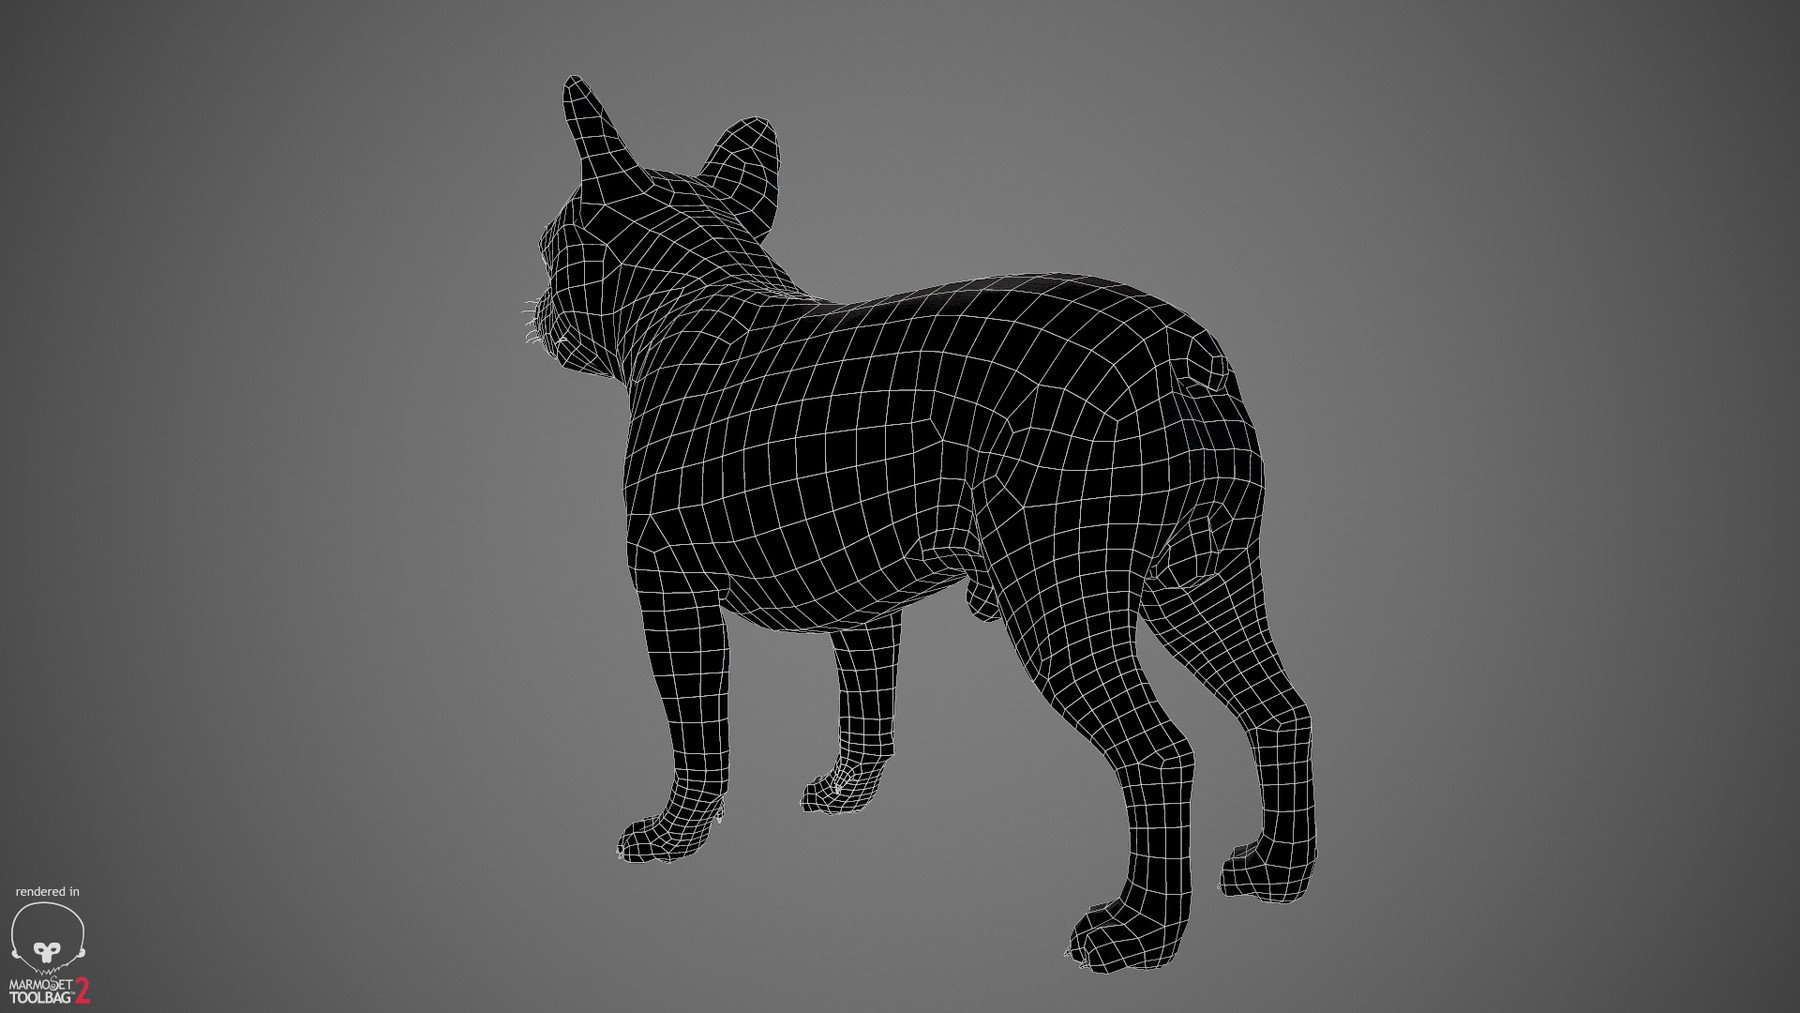 Frenchbulldog by alexlashko wireframe 02